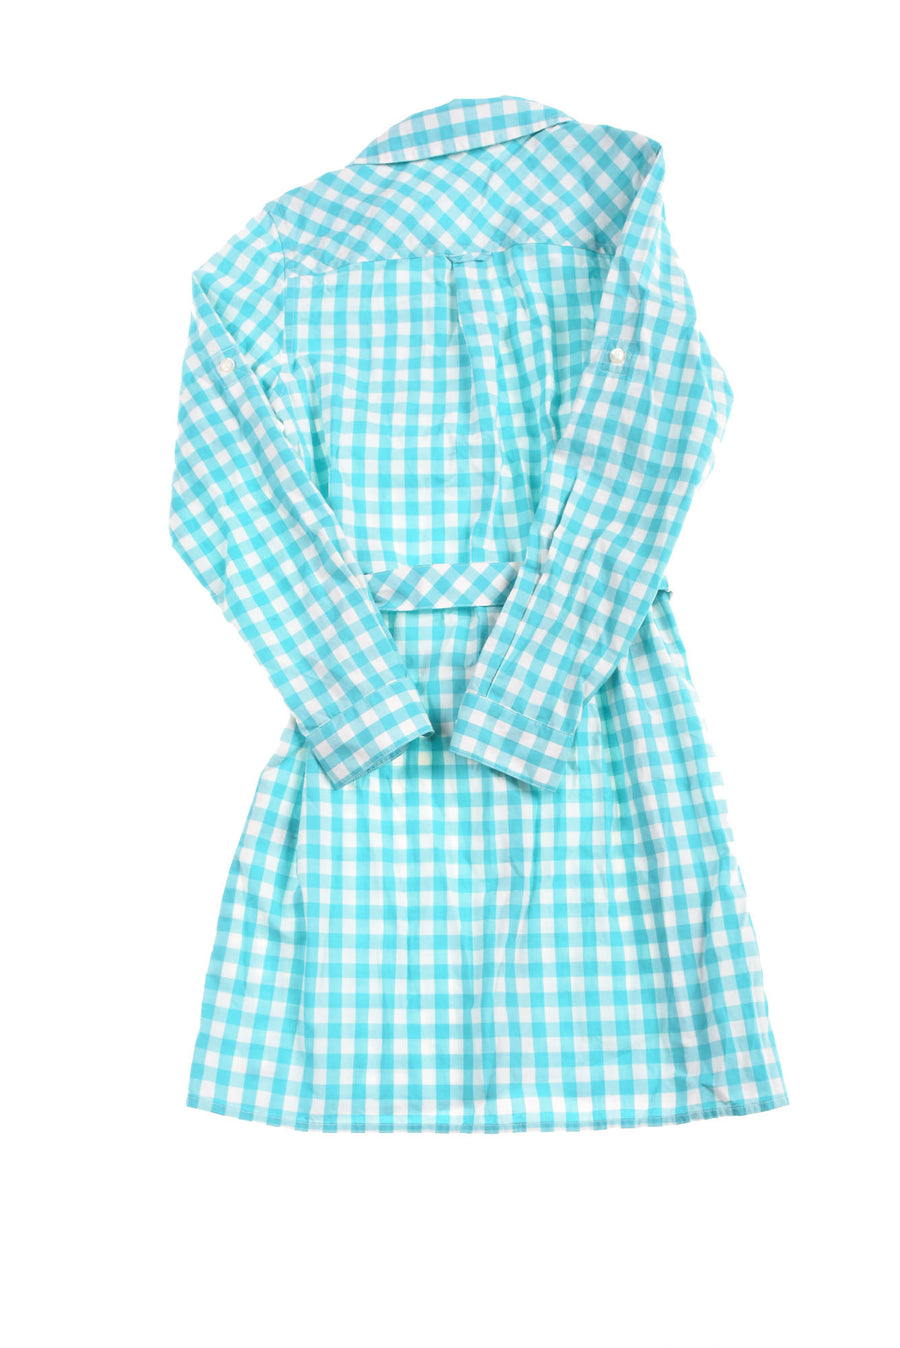 USED Vineyard Vines Girl's Dress 8 Blue & White